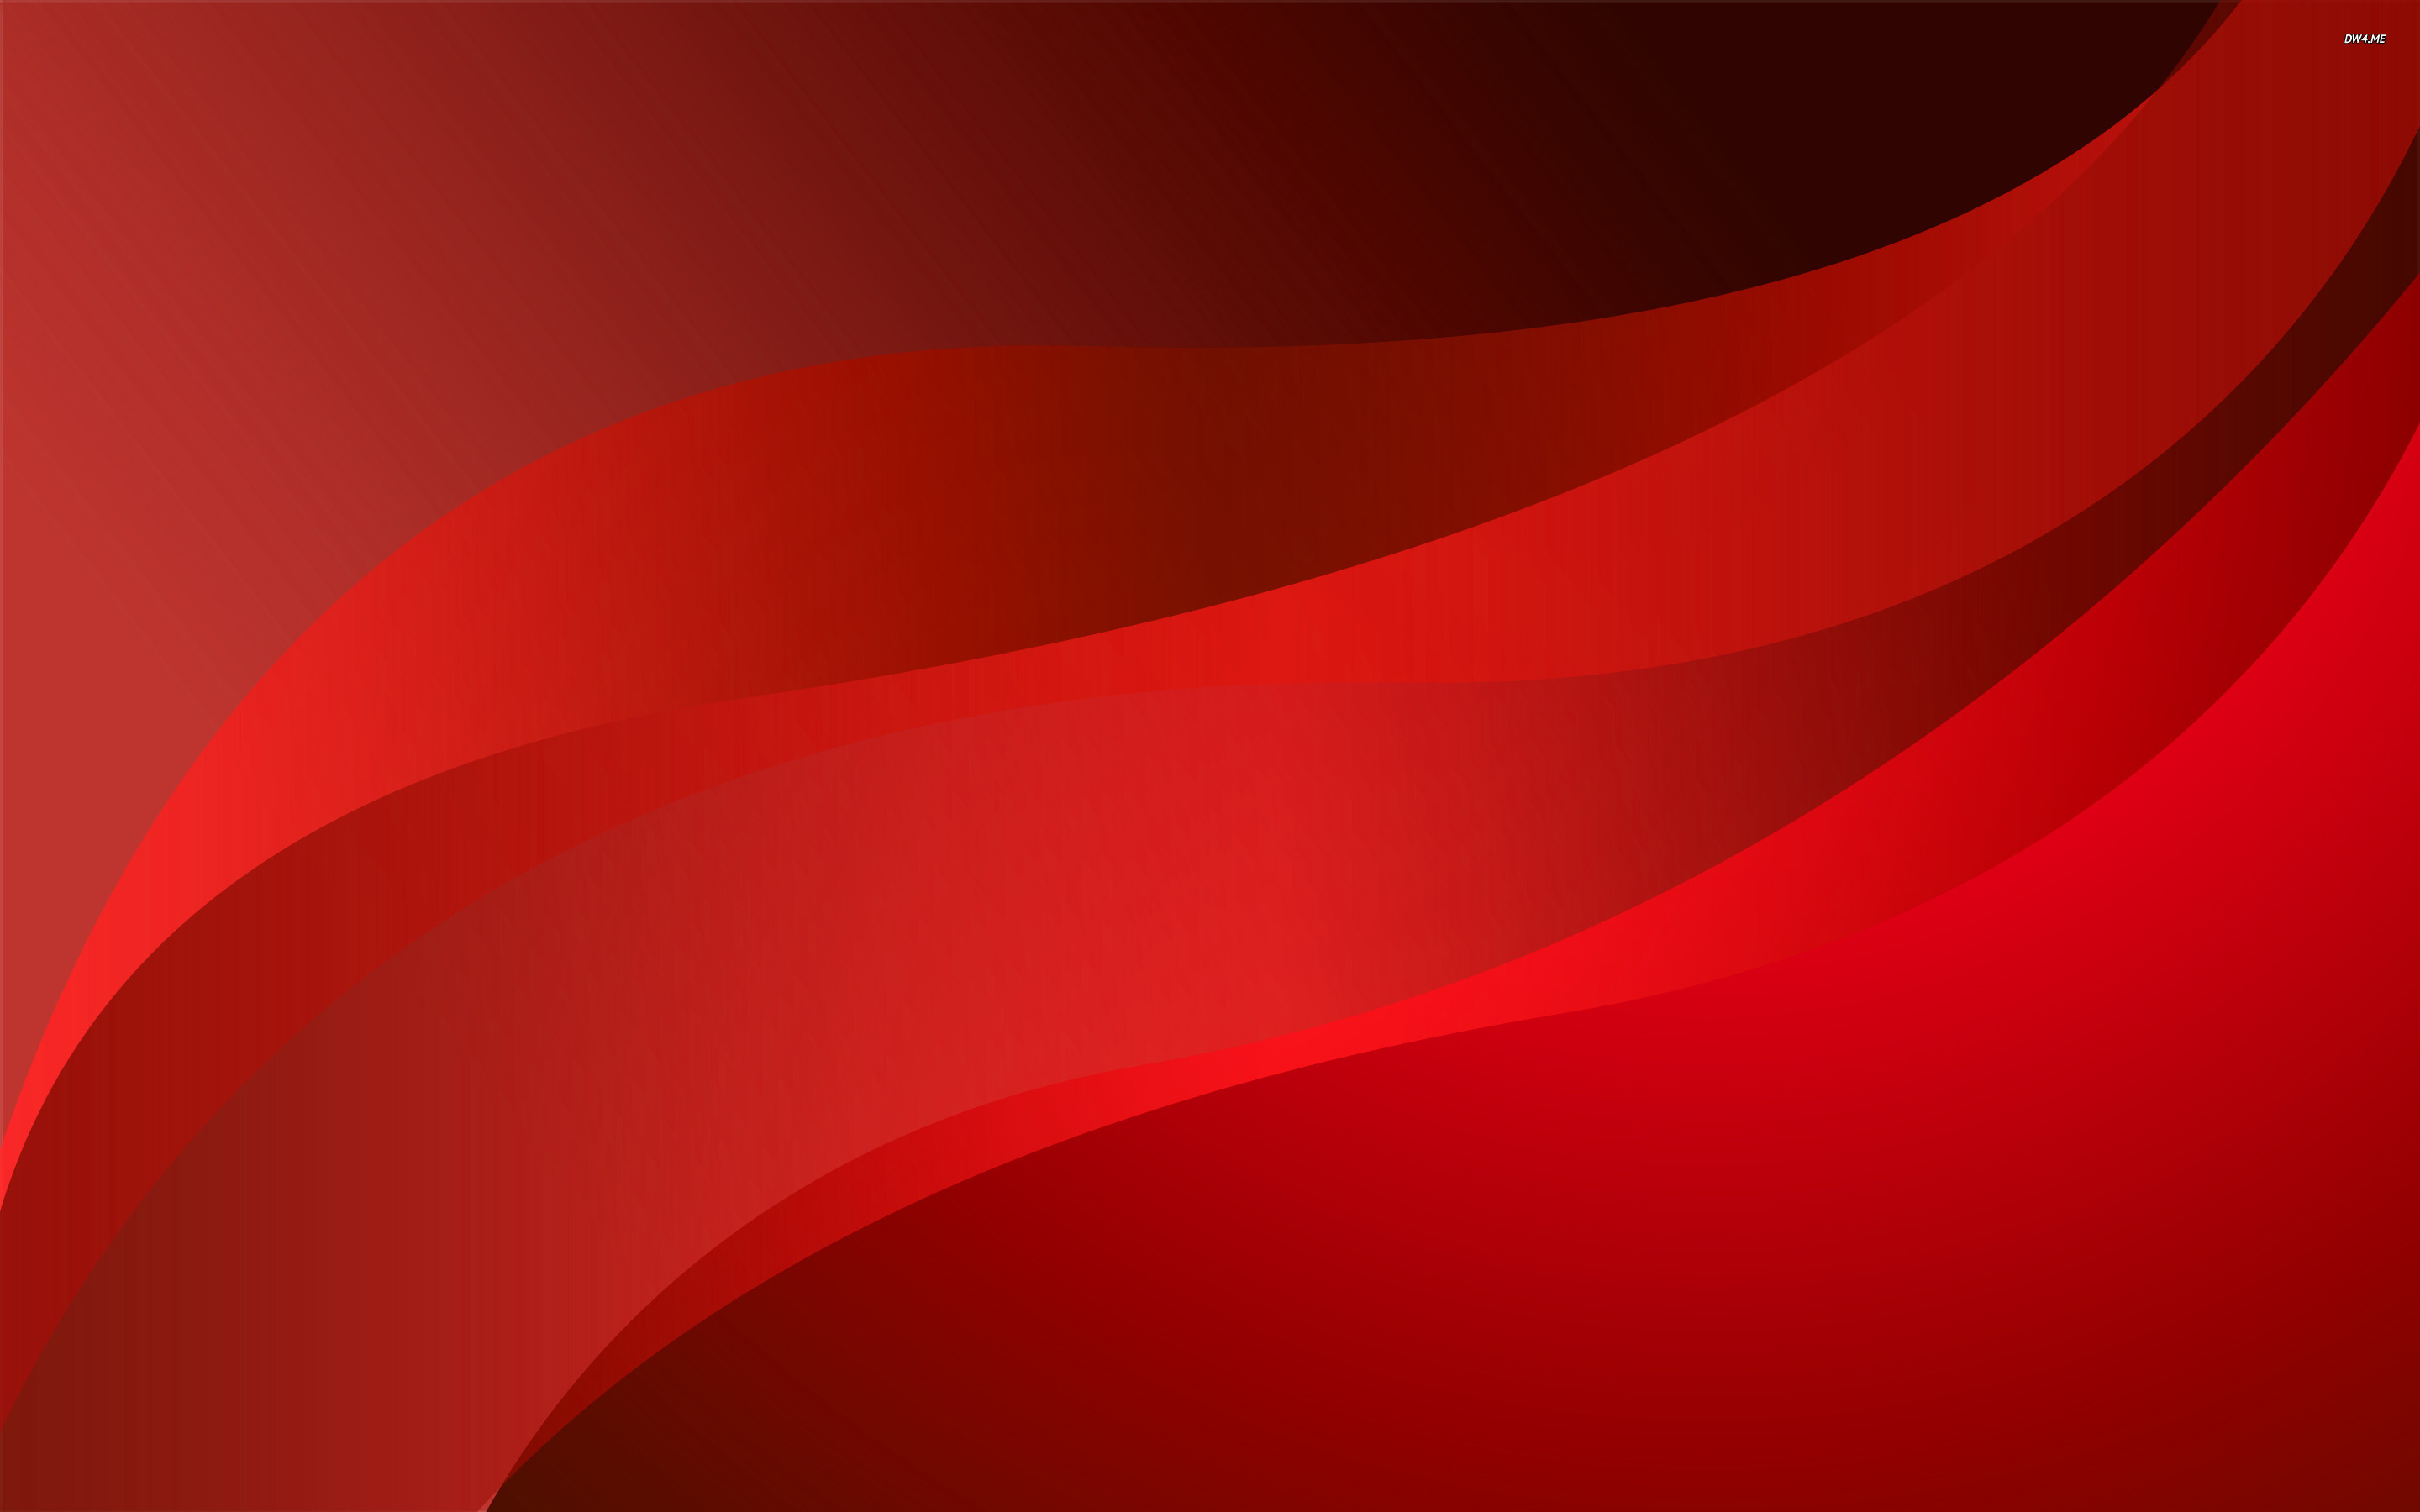 red curves abstract wallpaper | HD Wallpaper, Backgrounds, Tumblr ...